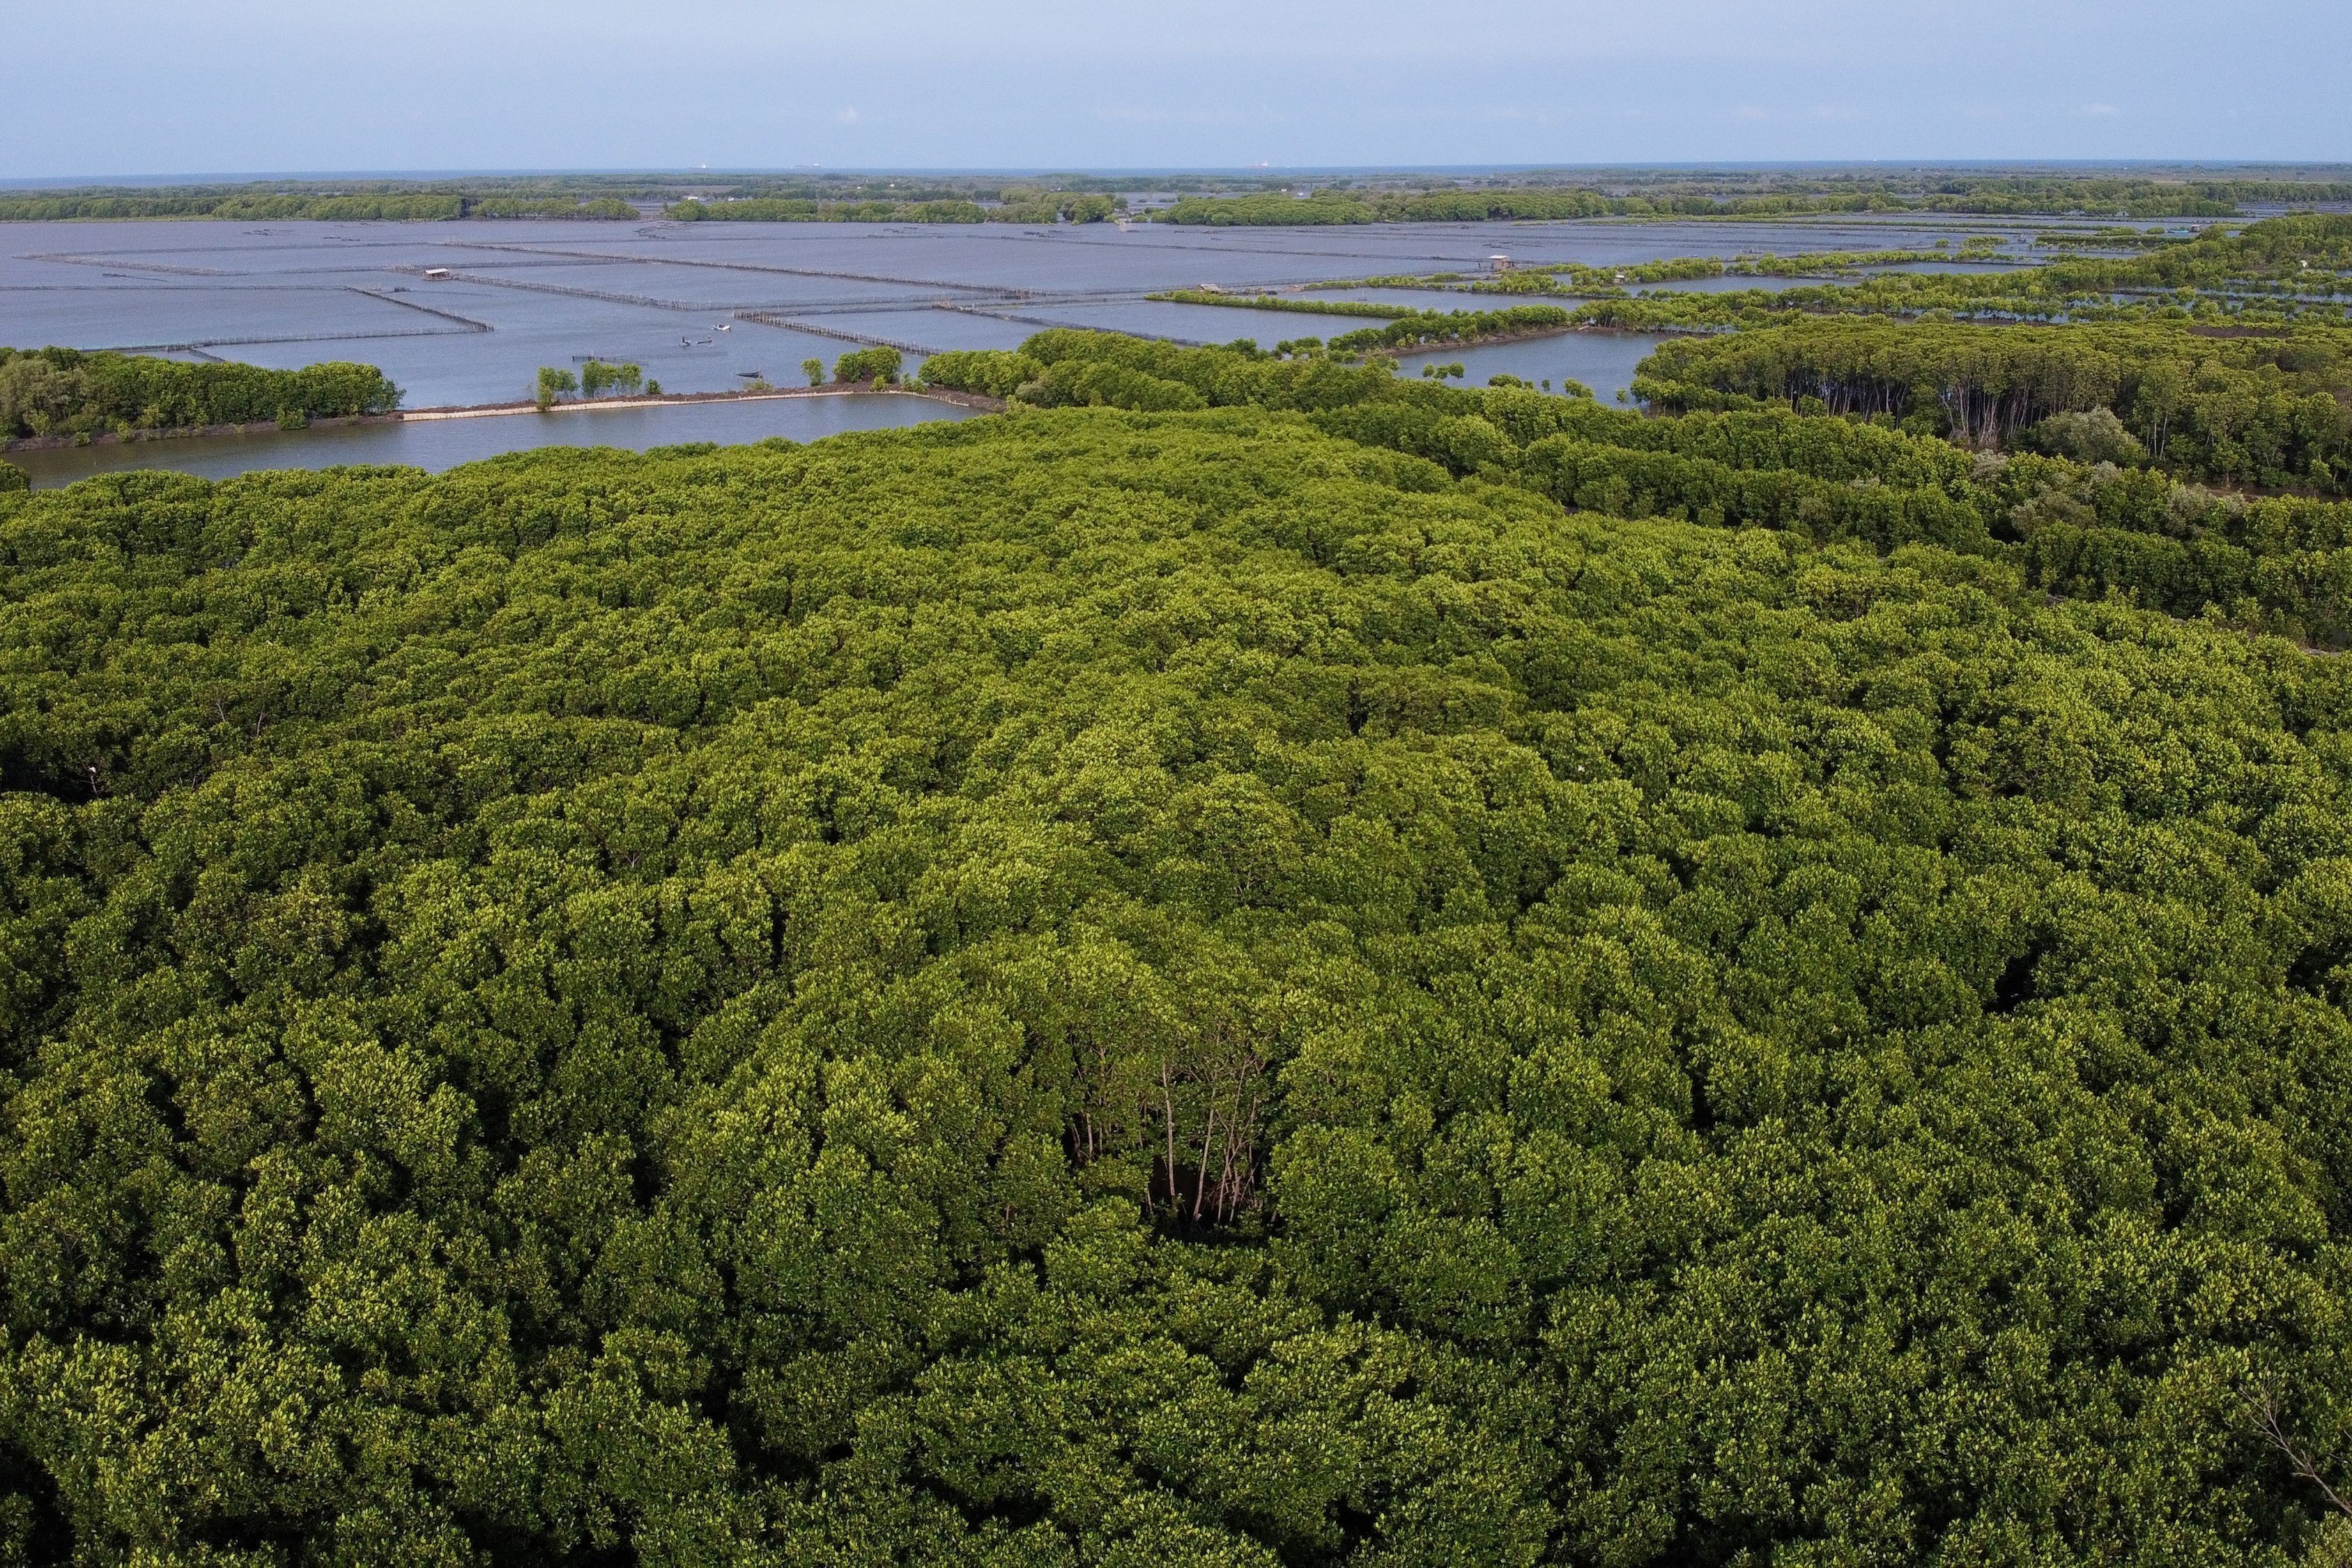 Indonesia's mangroves are at risk.